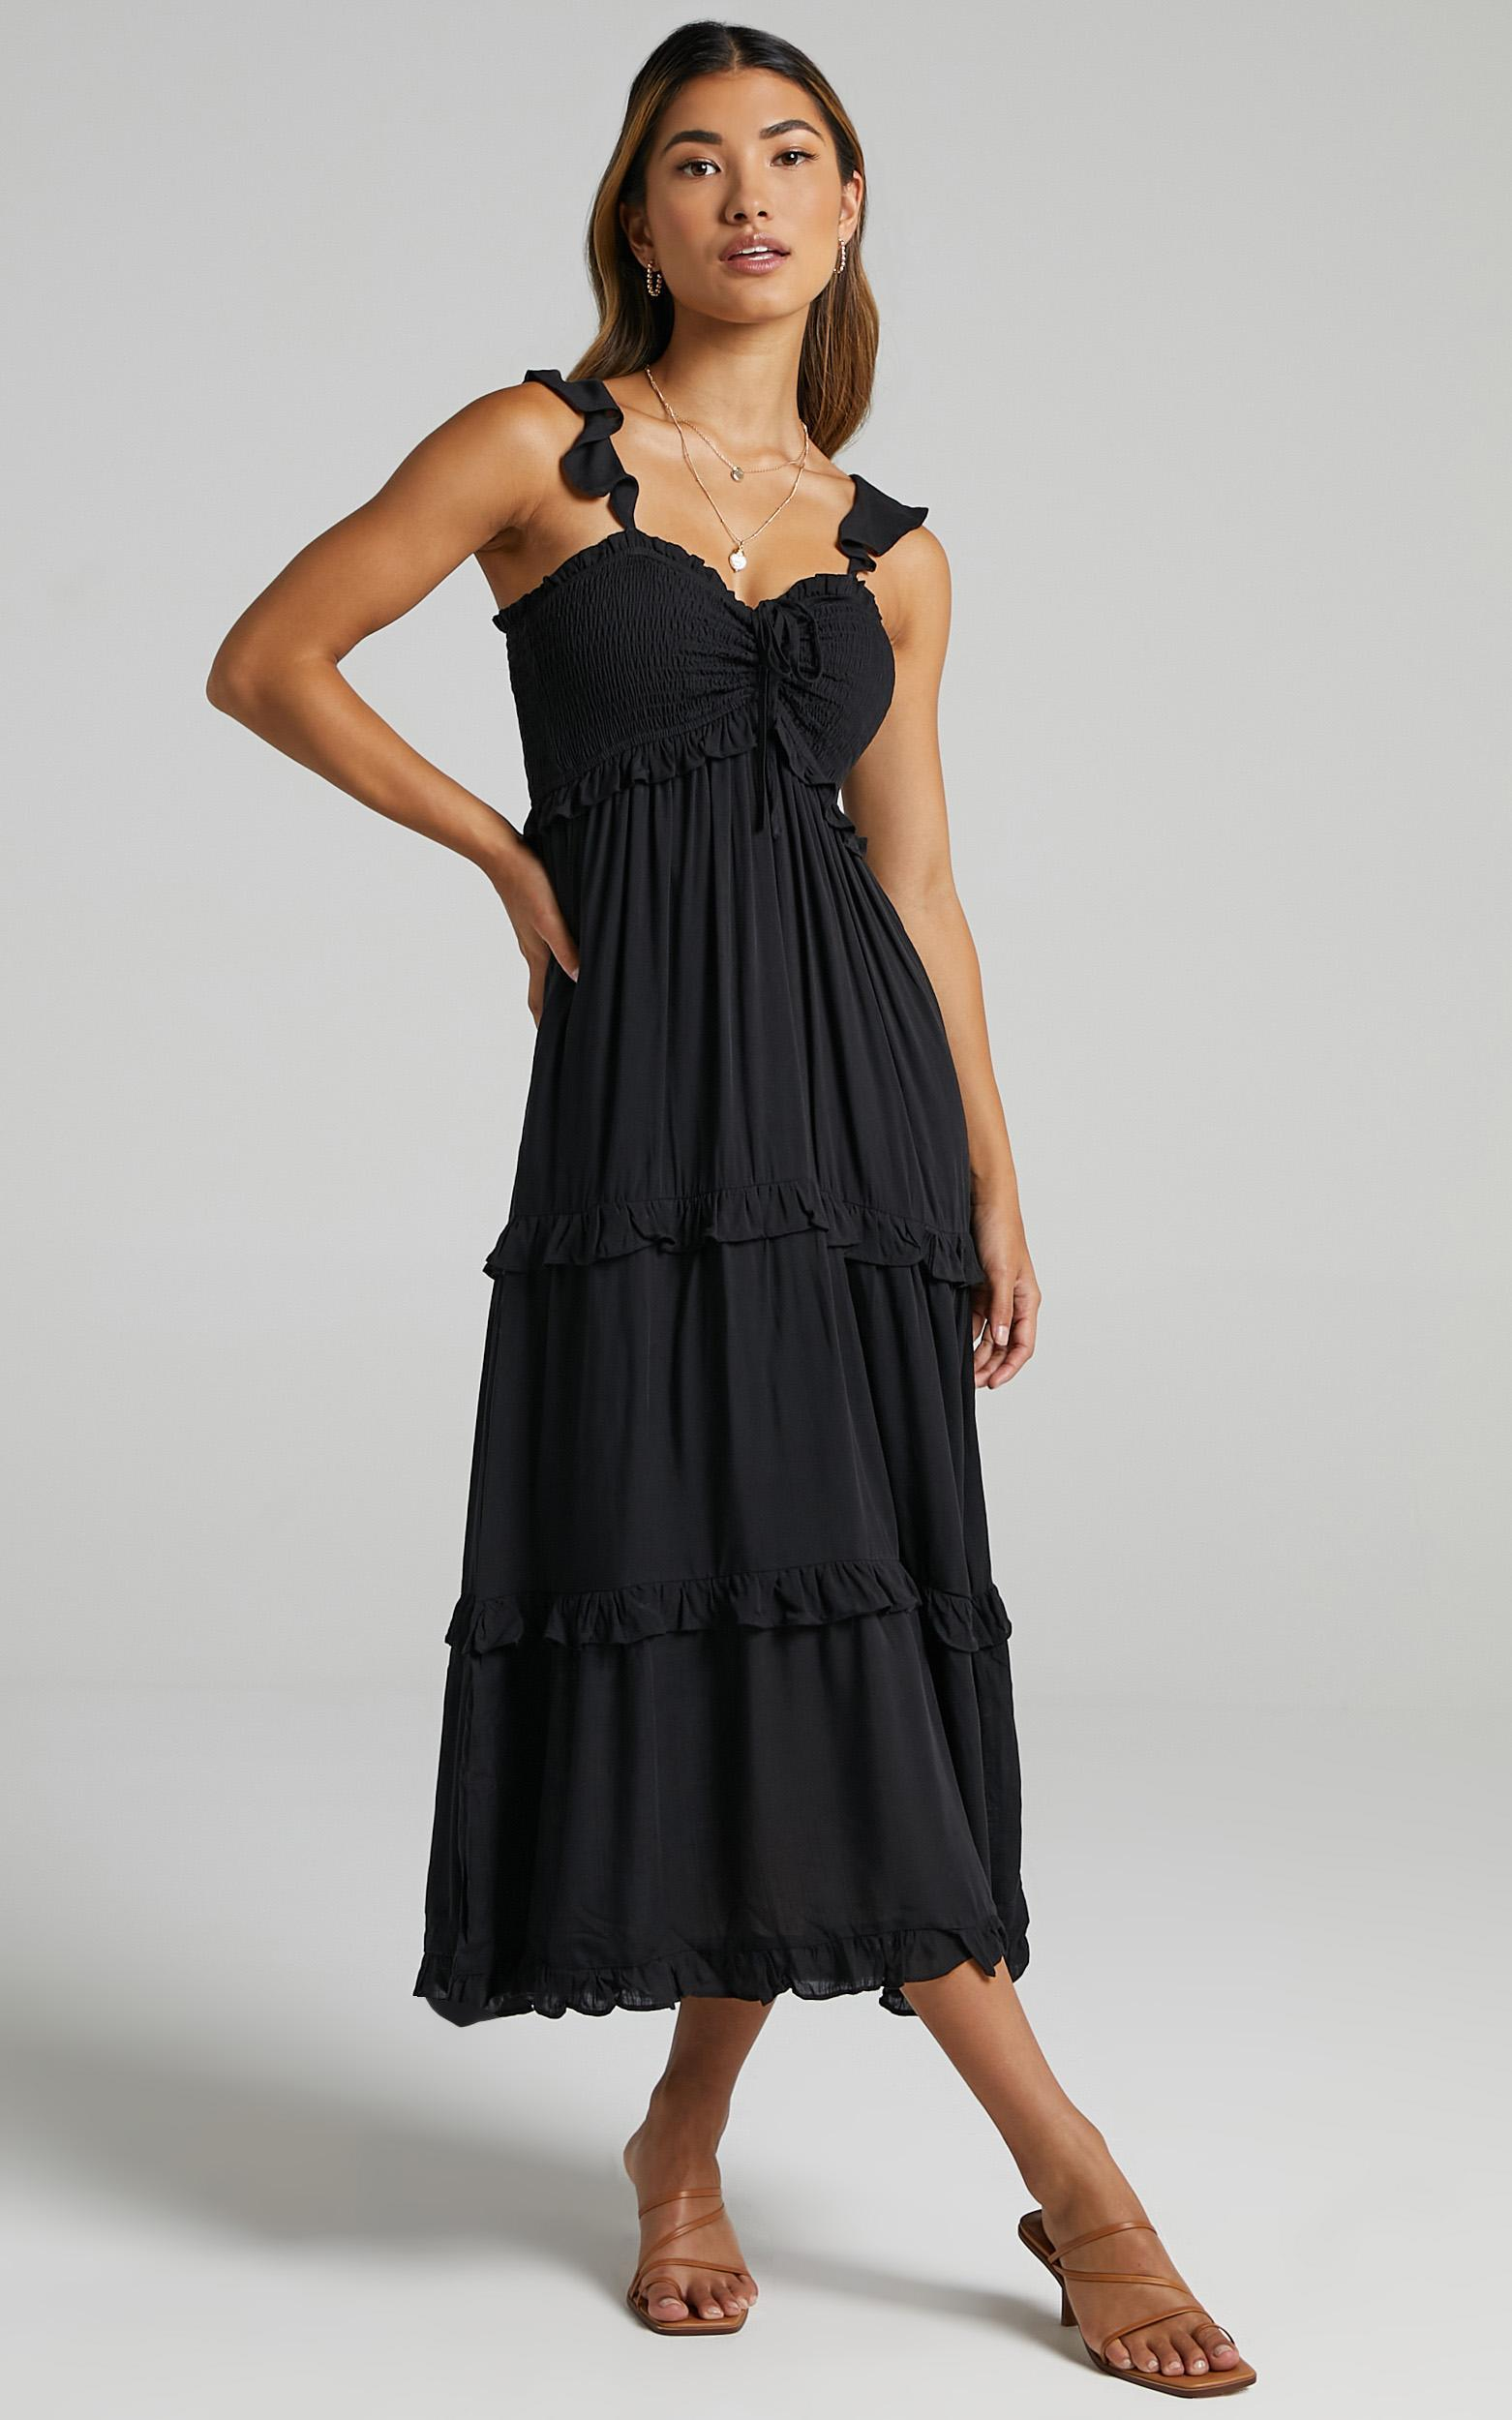 Good For The Soul Dress In Black - 6 (XS), Black, hi-res image number null